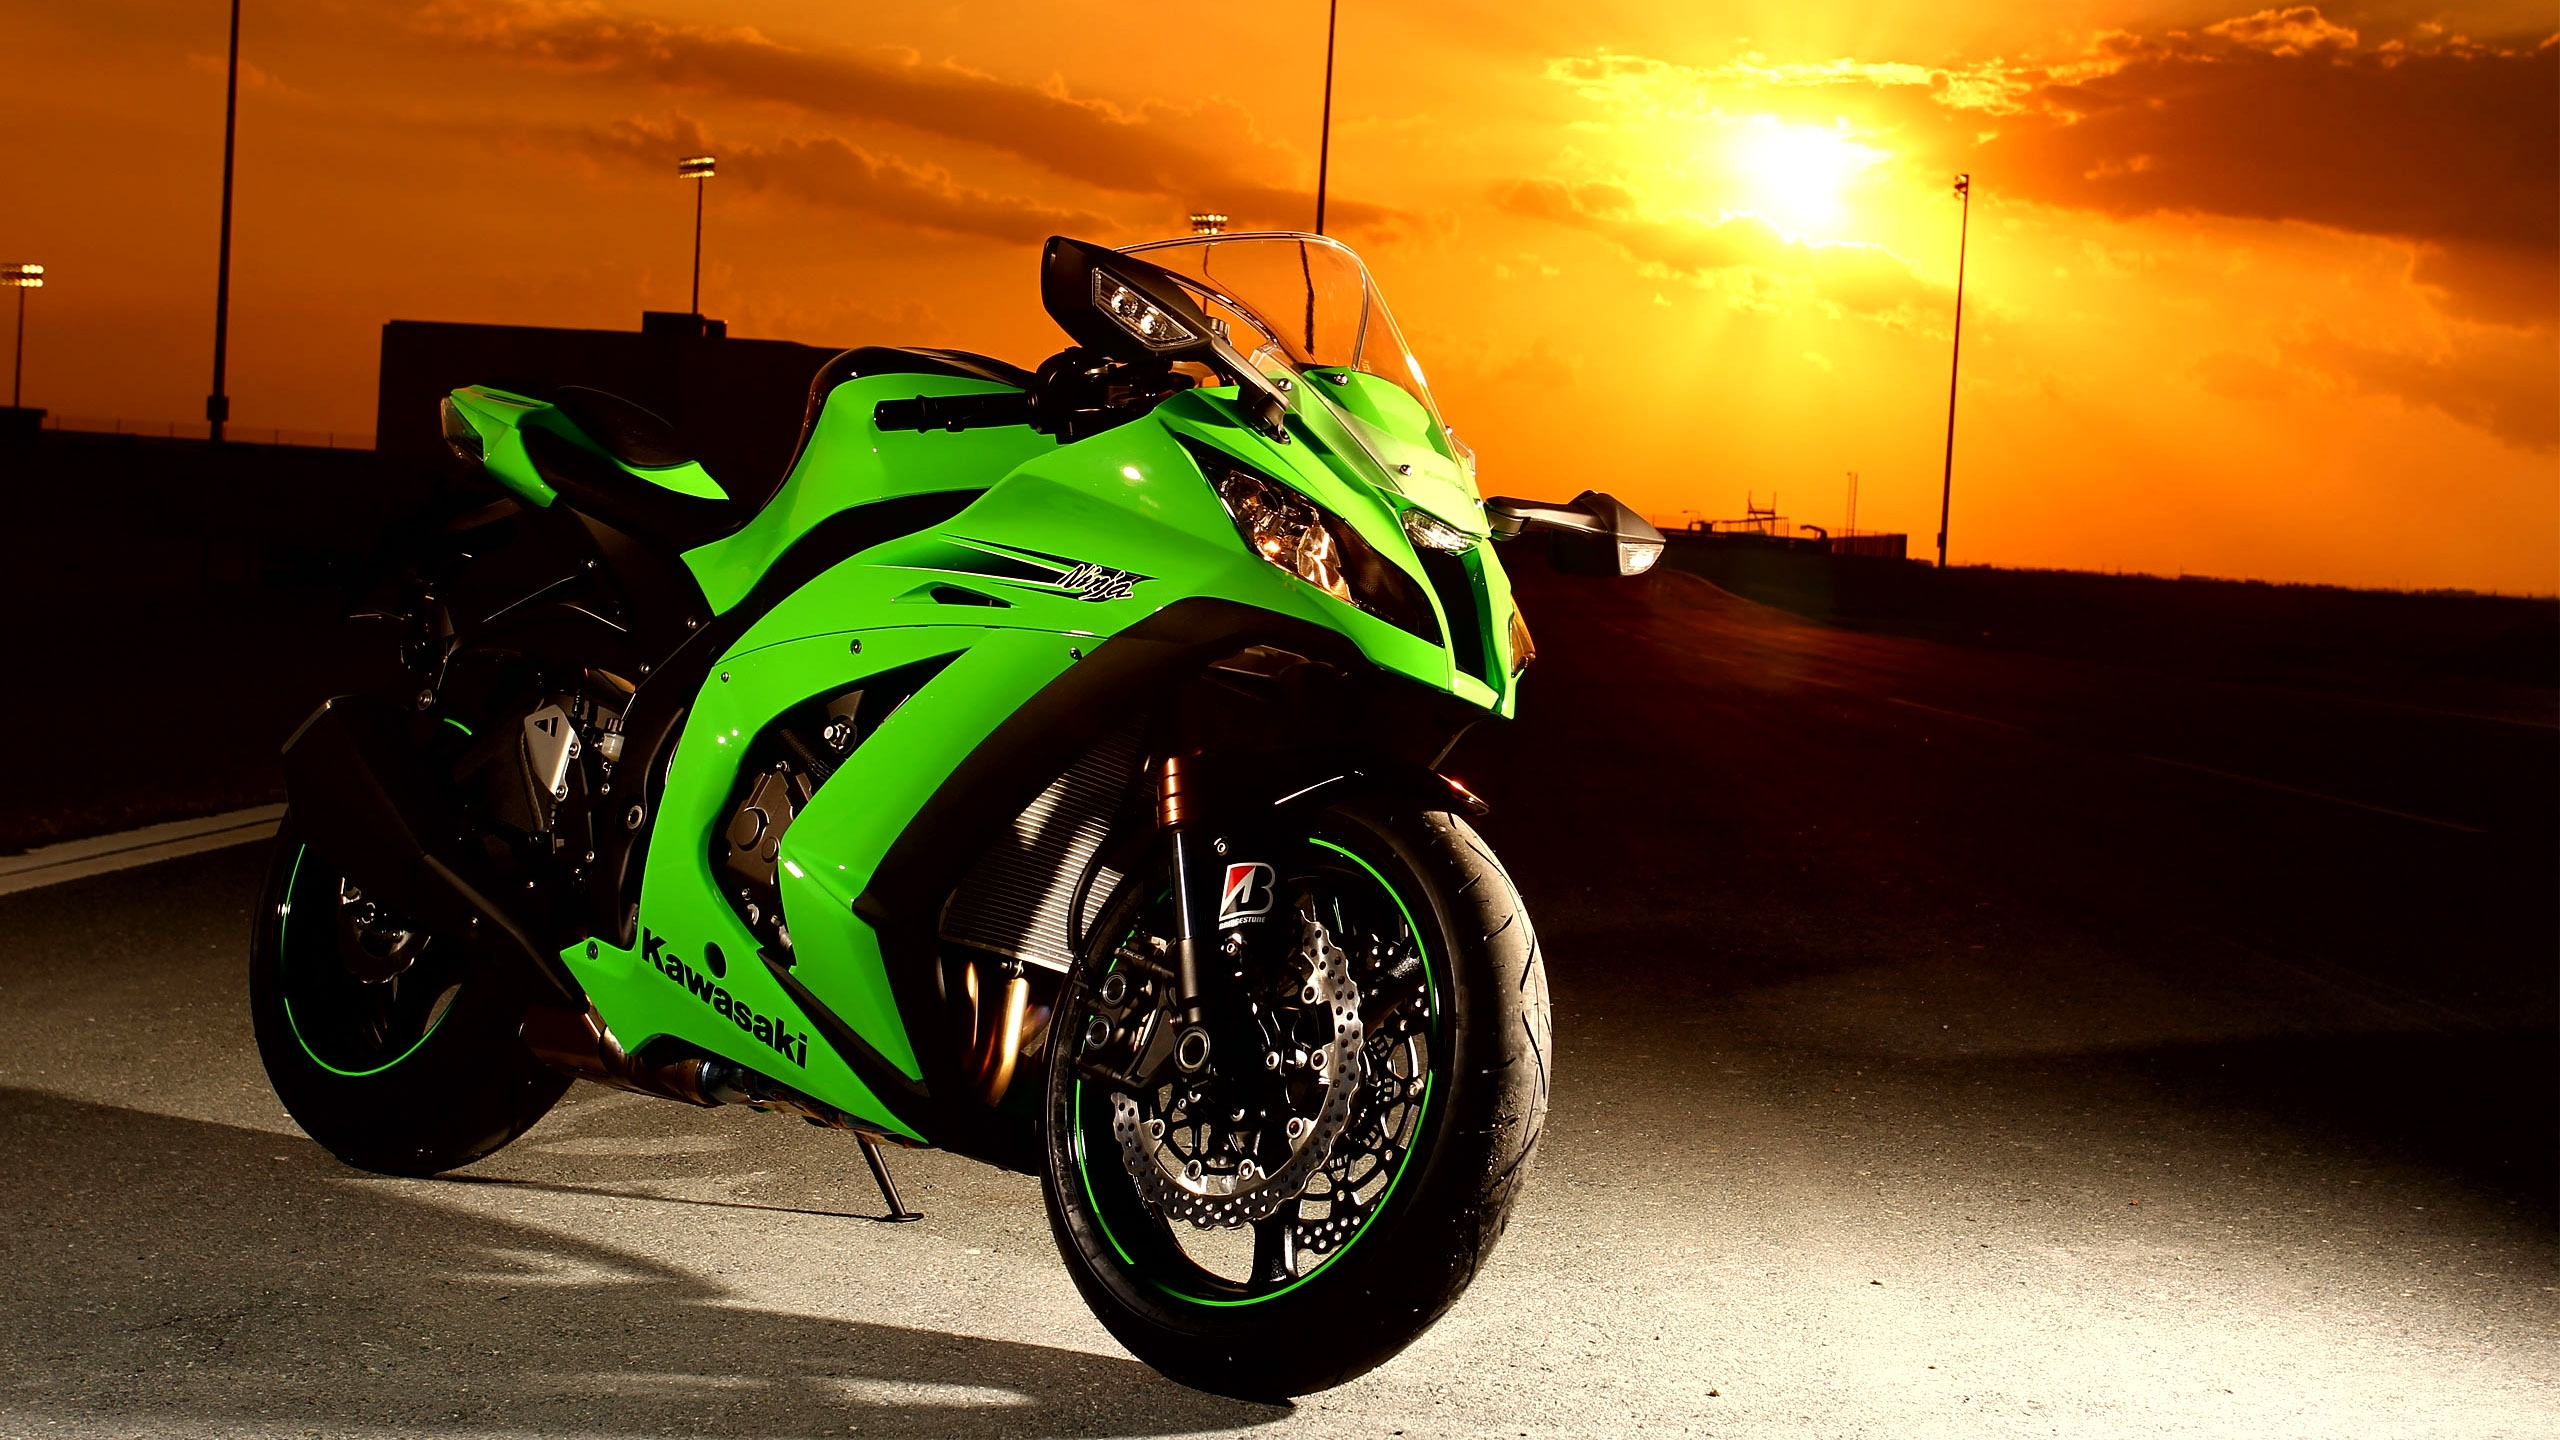 kawasaki ninja, hd bikes, 4k wallpapers, images, backgrounds, photos